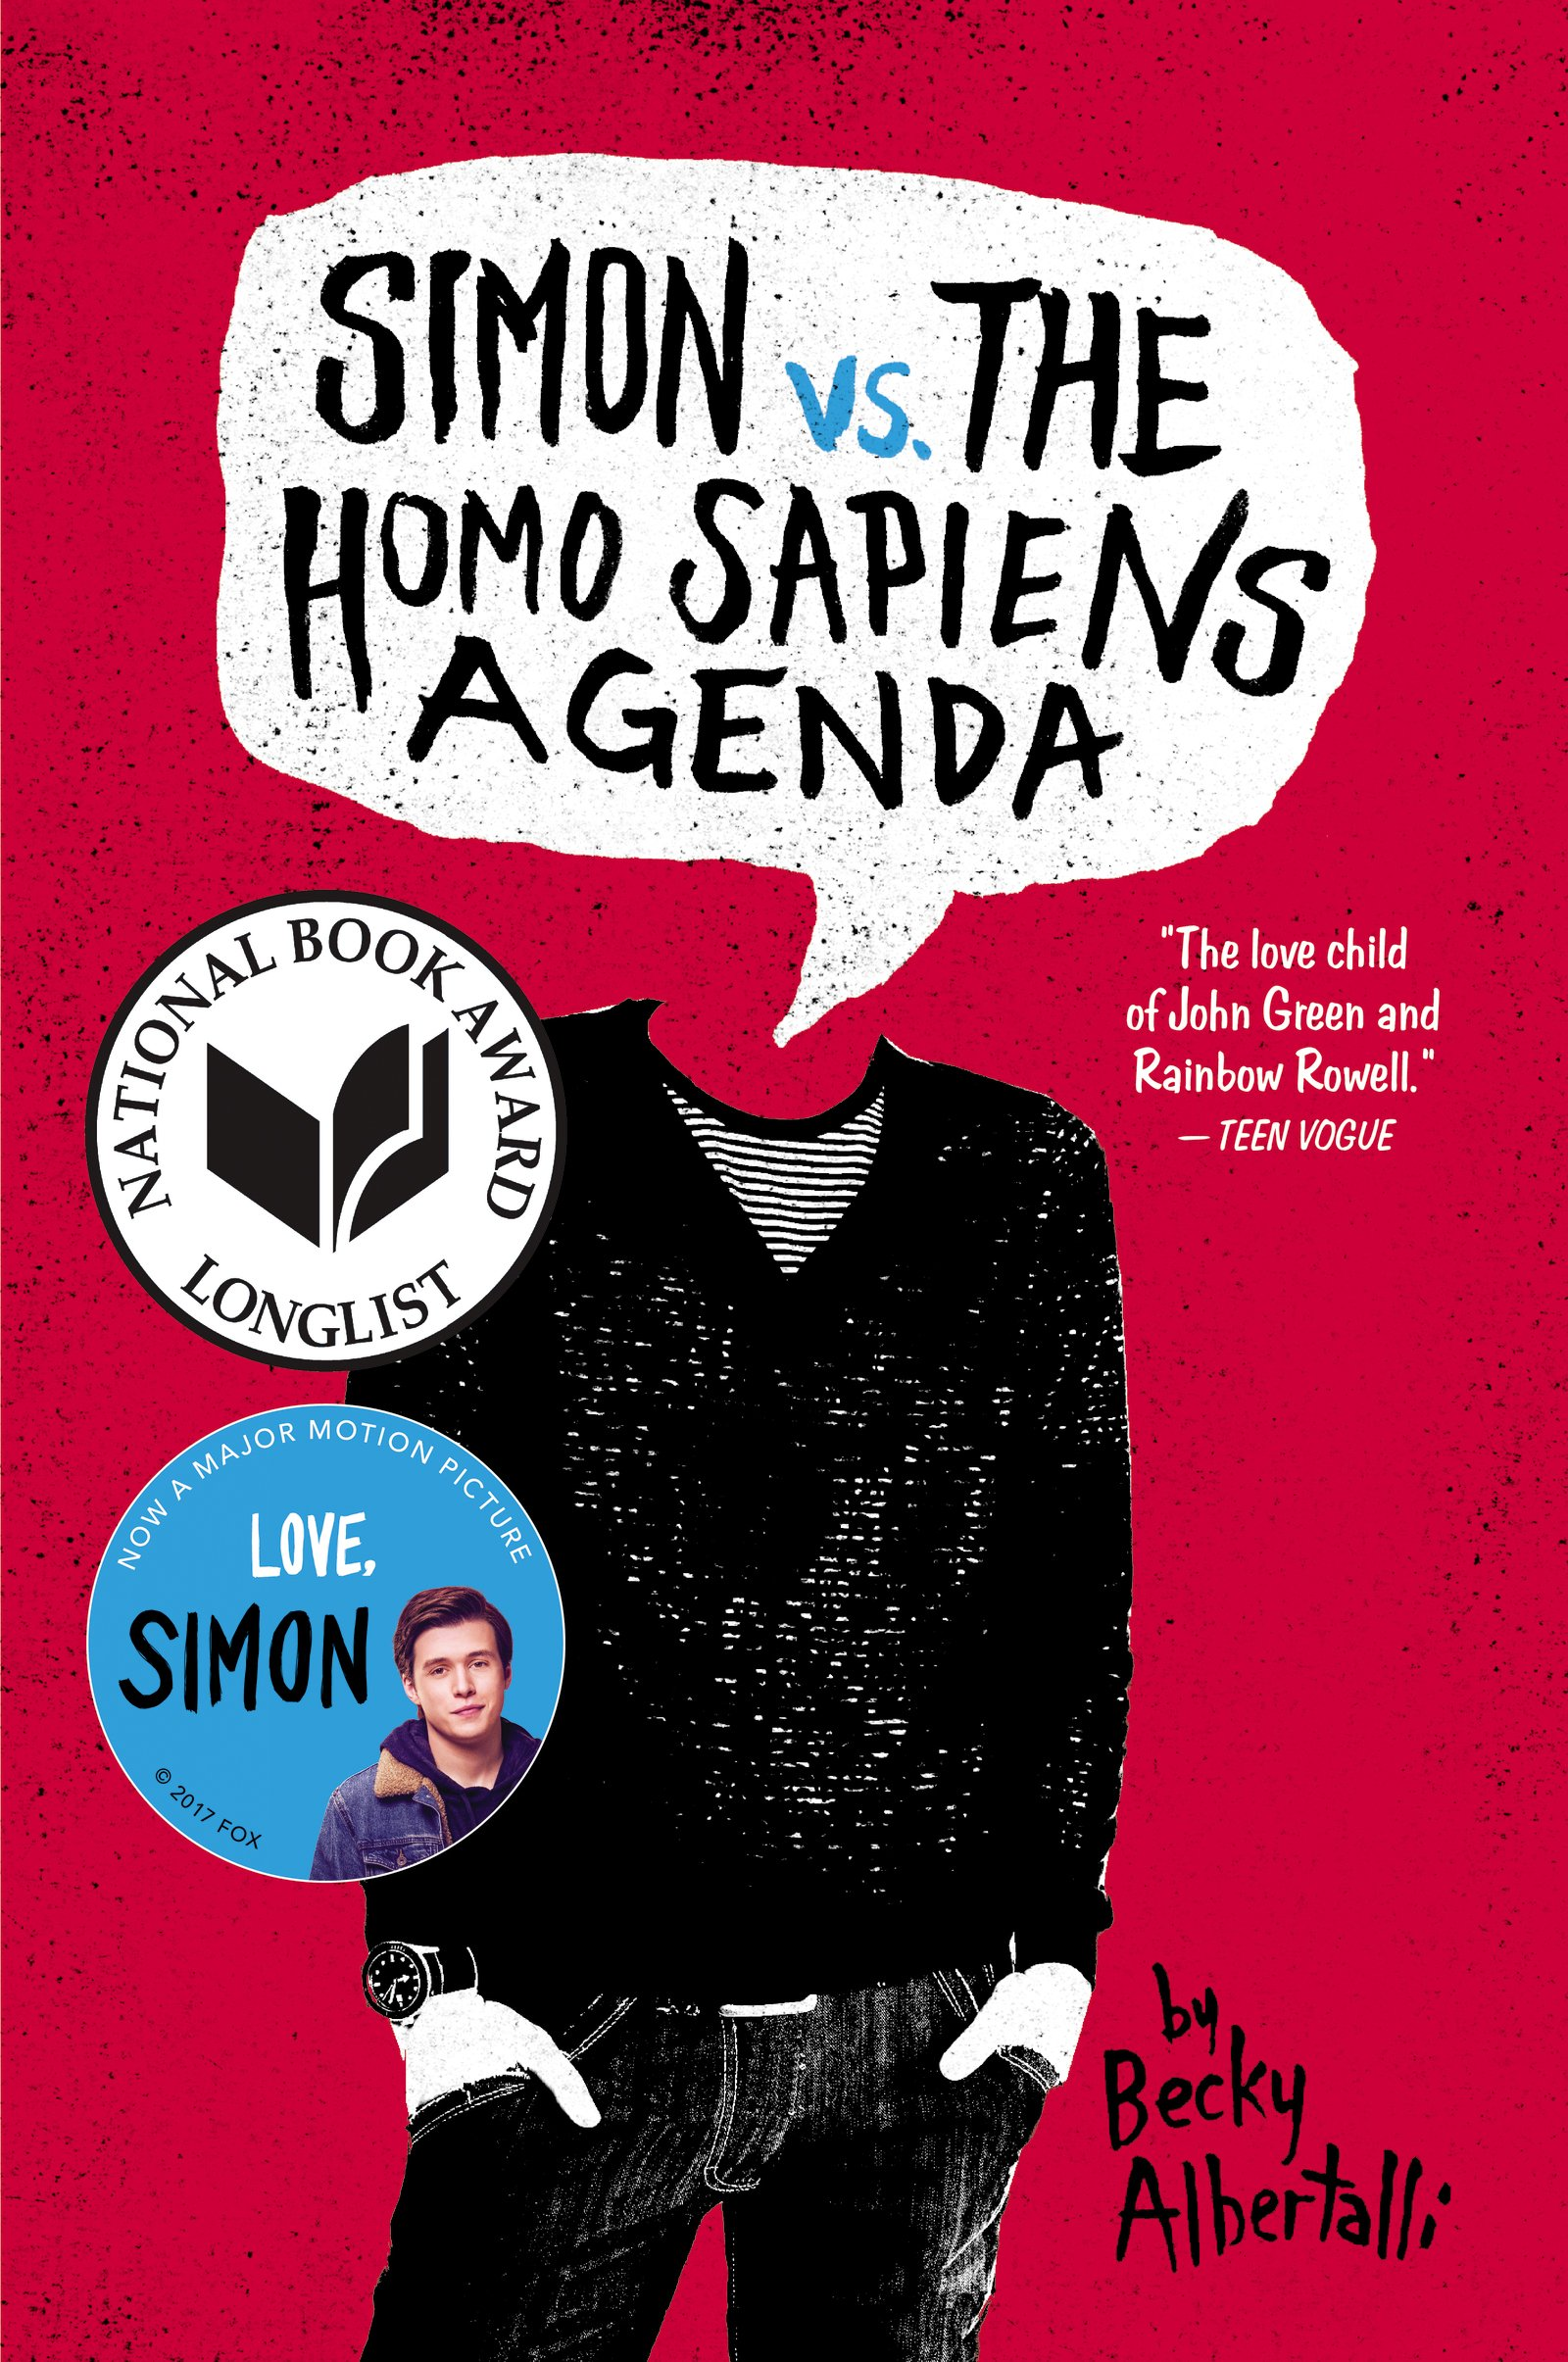 Billedresultat for simon vs the homosapien agenda